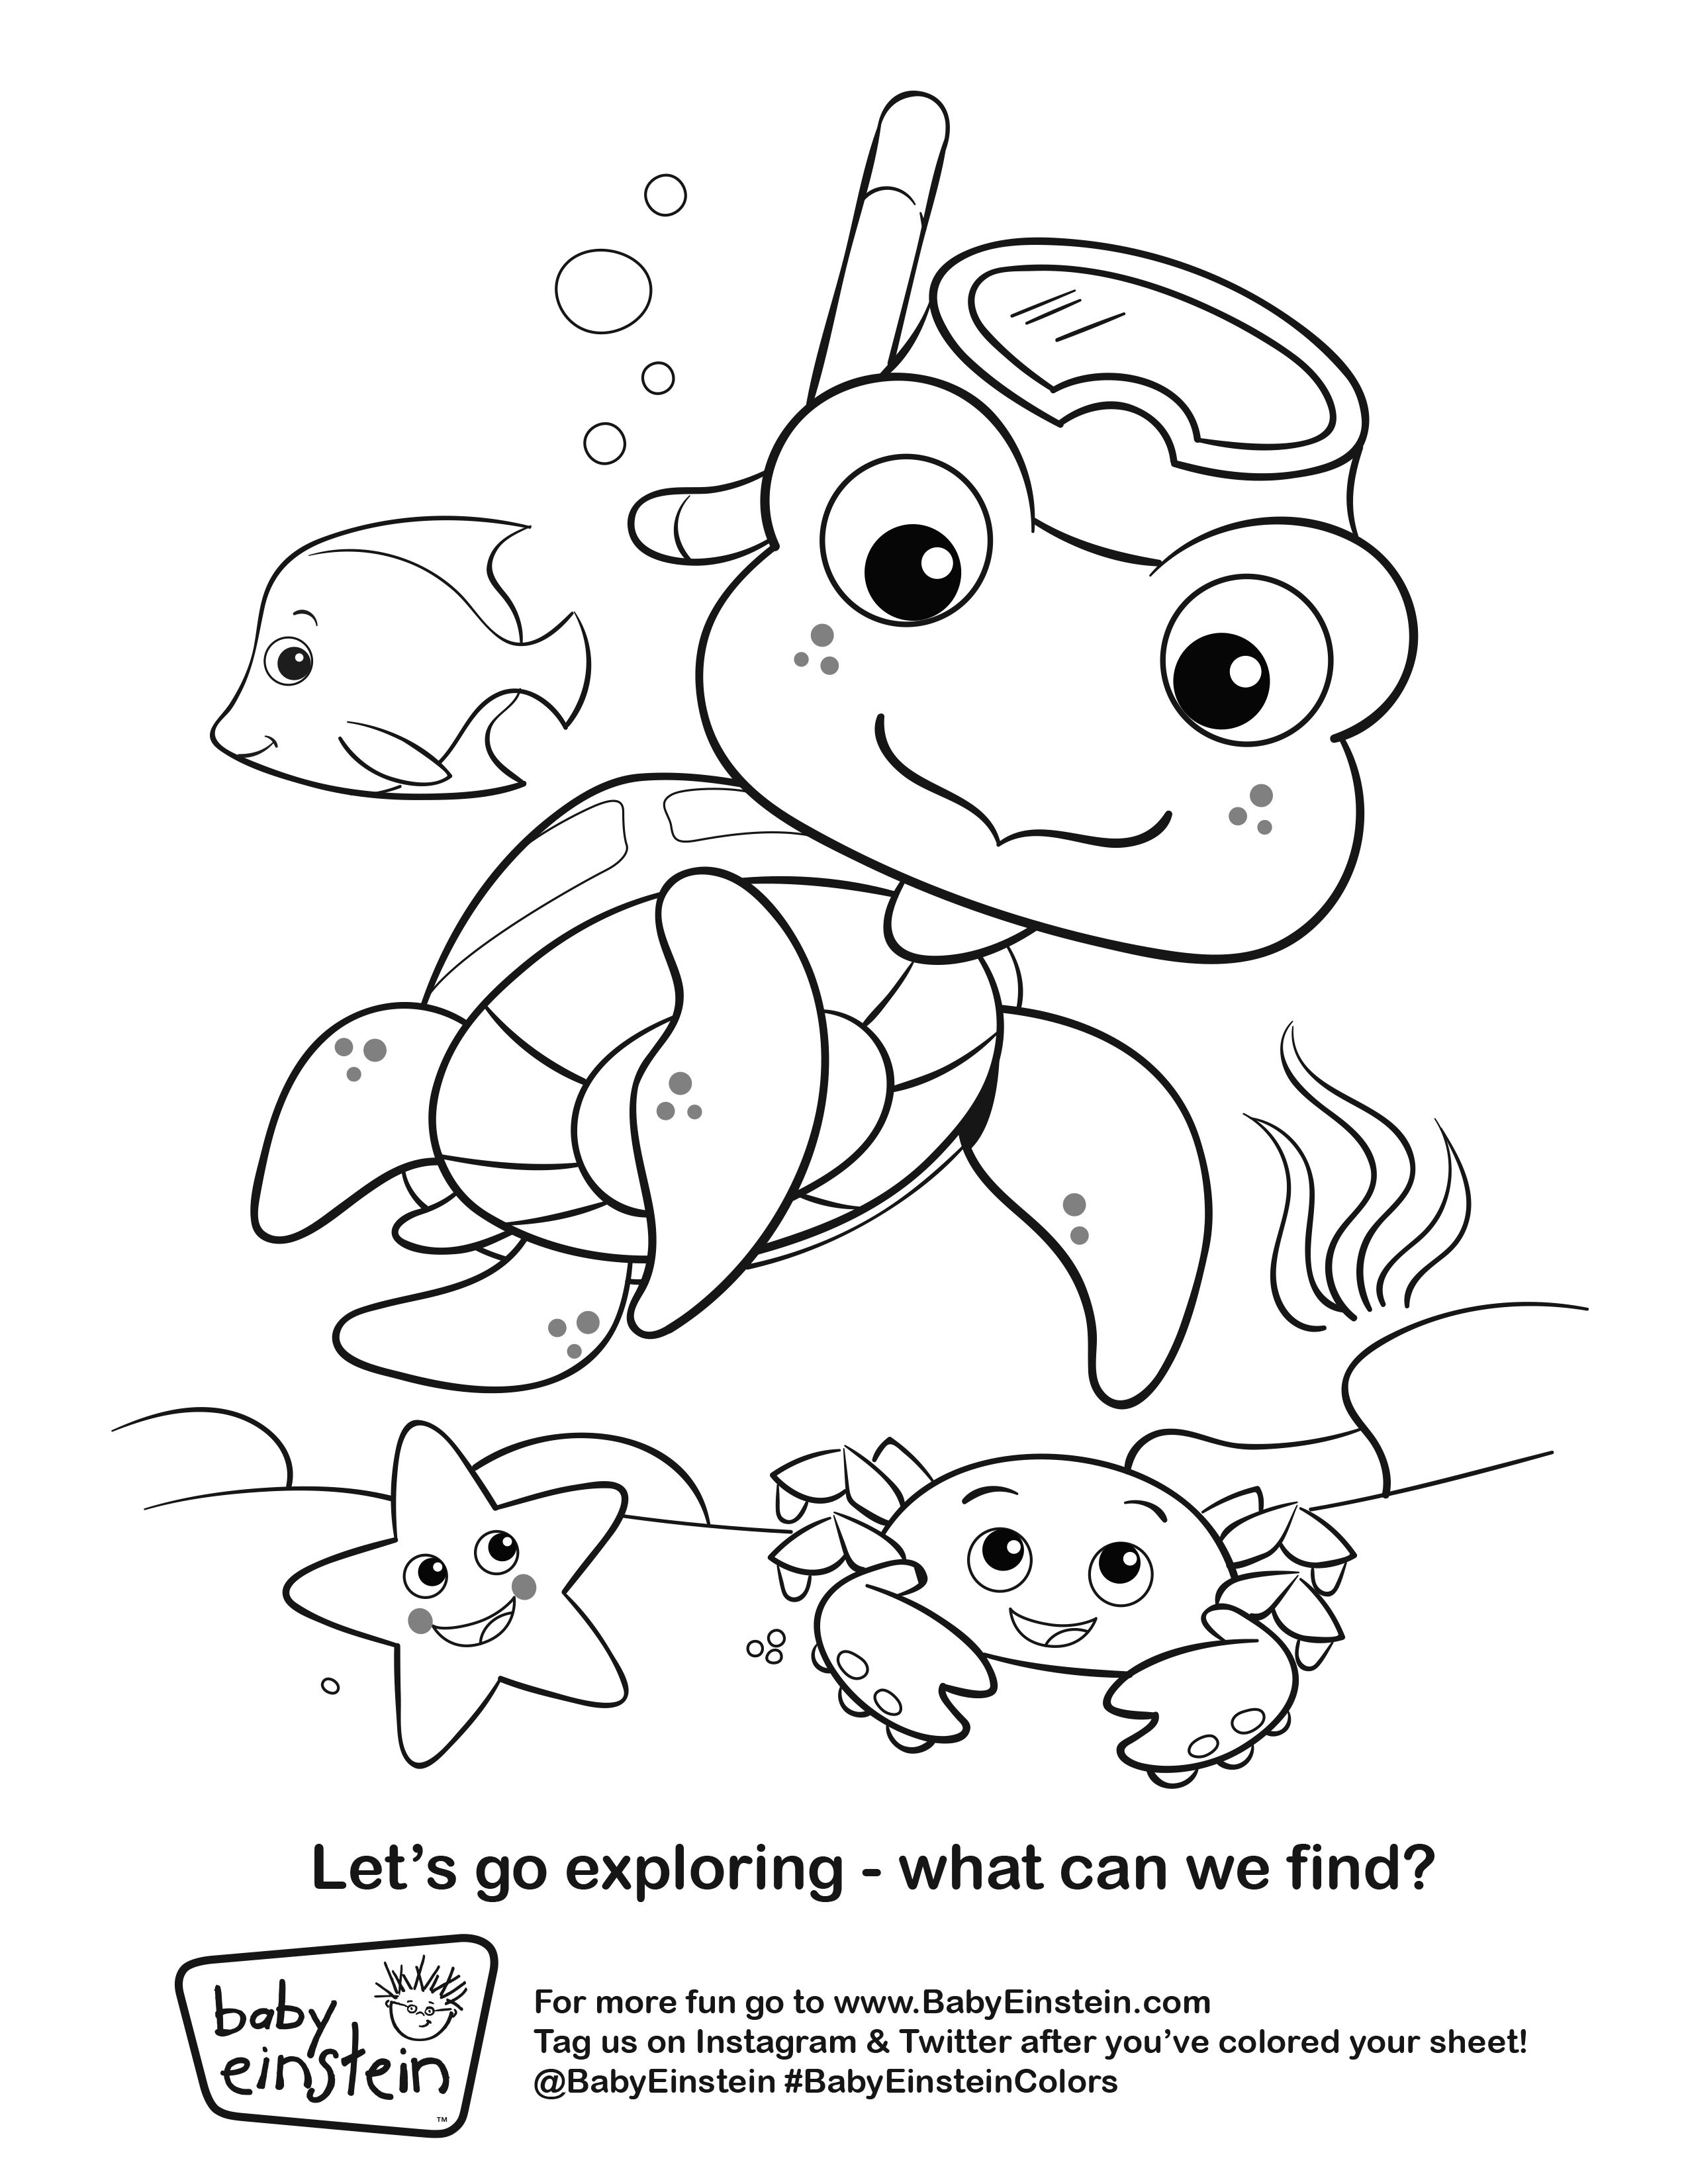 Keep Your Little One Having Fun This Summer With Our Coloring Sheets Print It Out And Show Us The Animal Coloring Pages Turtle Crafts Alphabet Coloring Pages